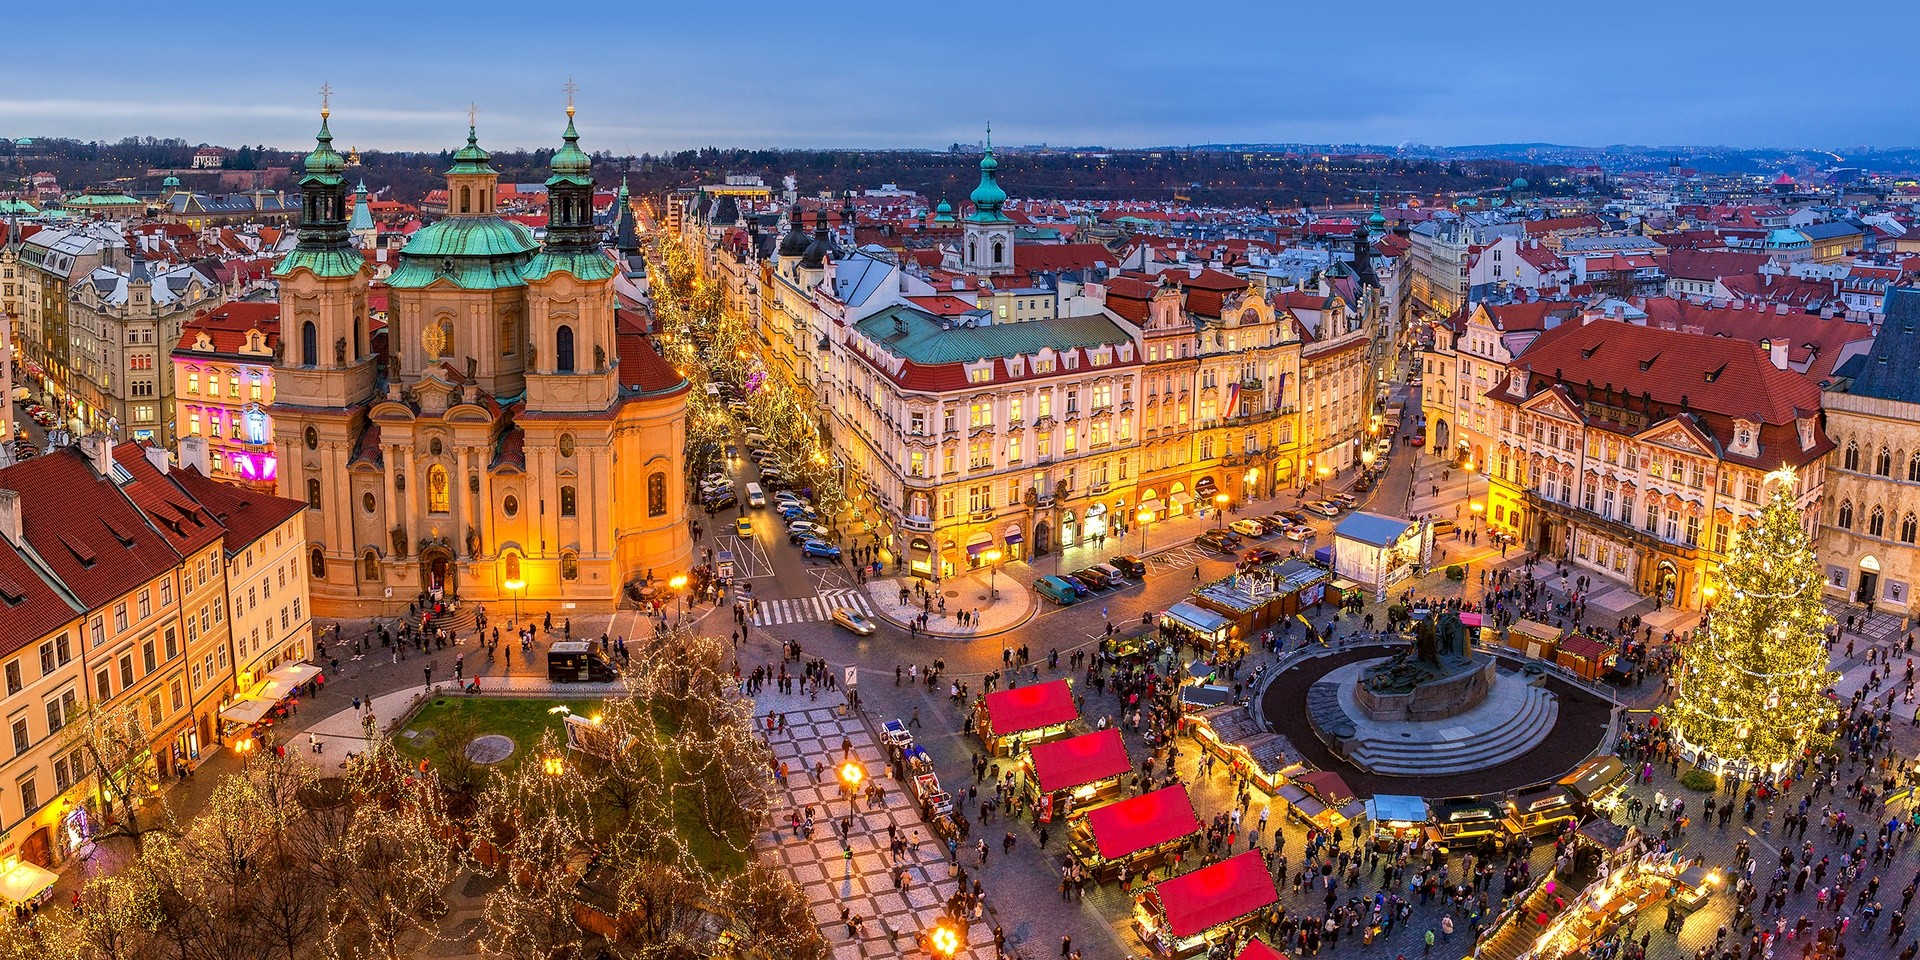 20 Days To Christmas Top 10 Most Christmassy Cities In Europe 3 Days To Christmas Days To Christmas 20 Days To Christmas: Top 10 Most Christmassy Cities In Europe 20 Days To Christmas Top 10 Most Christmassy Cities In Europe 3